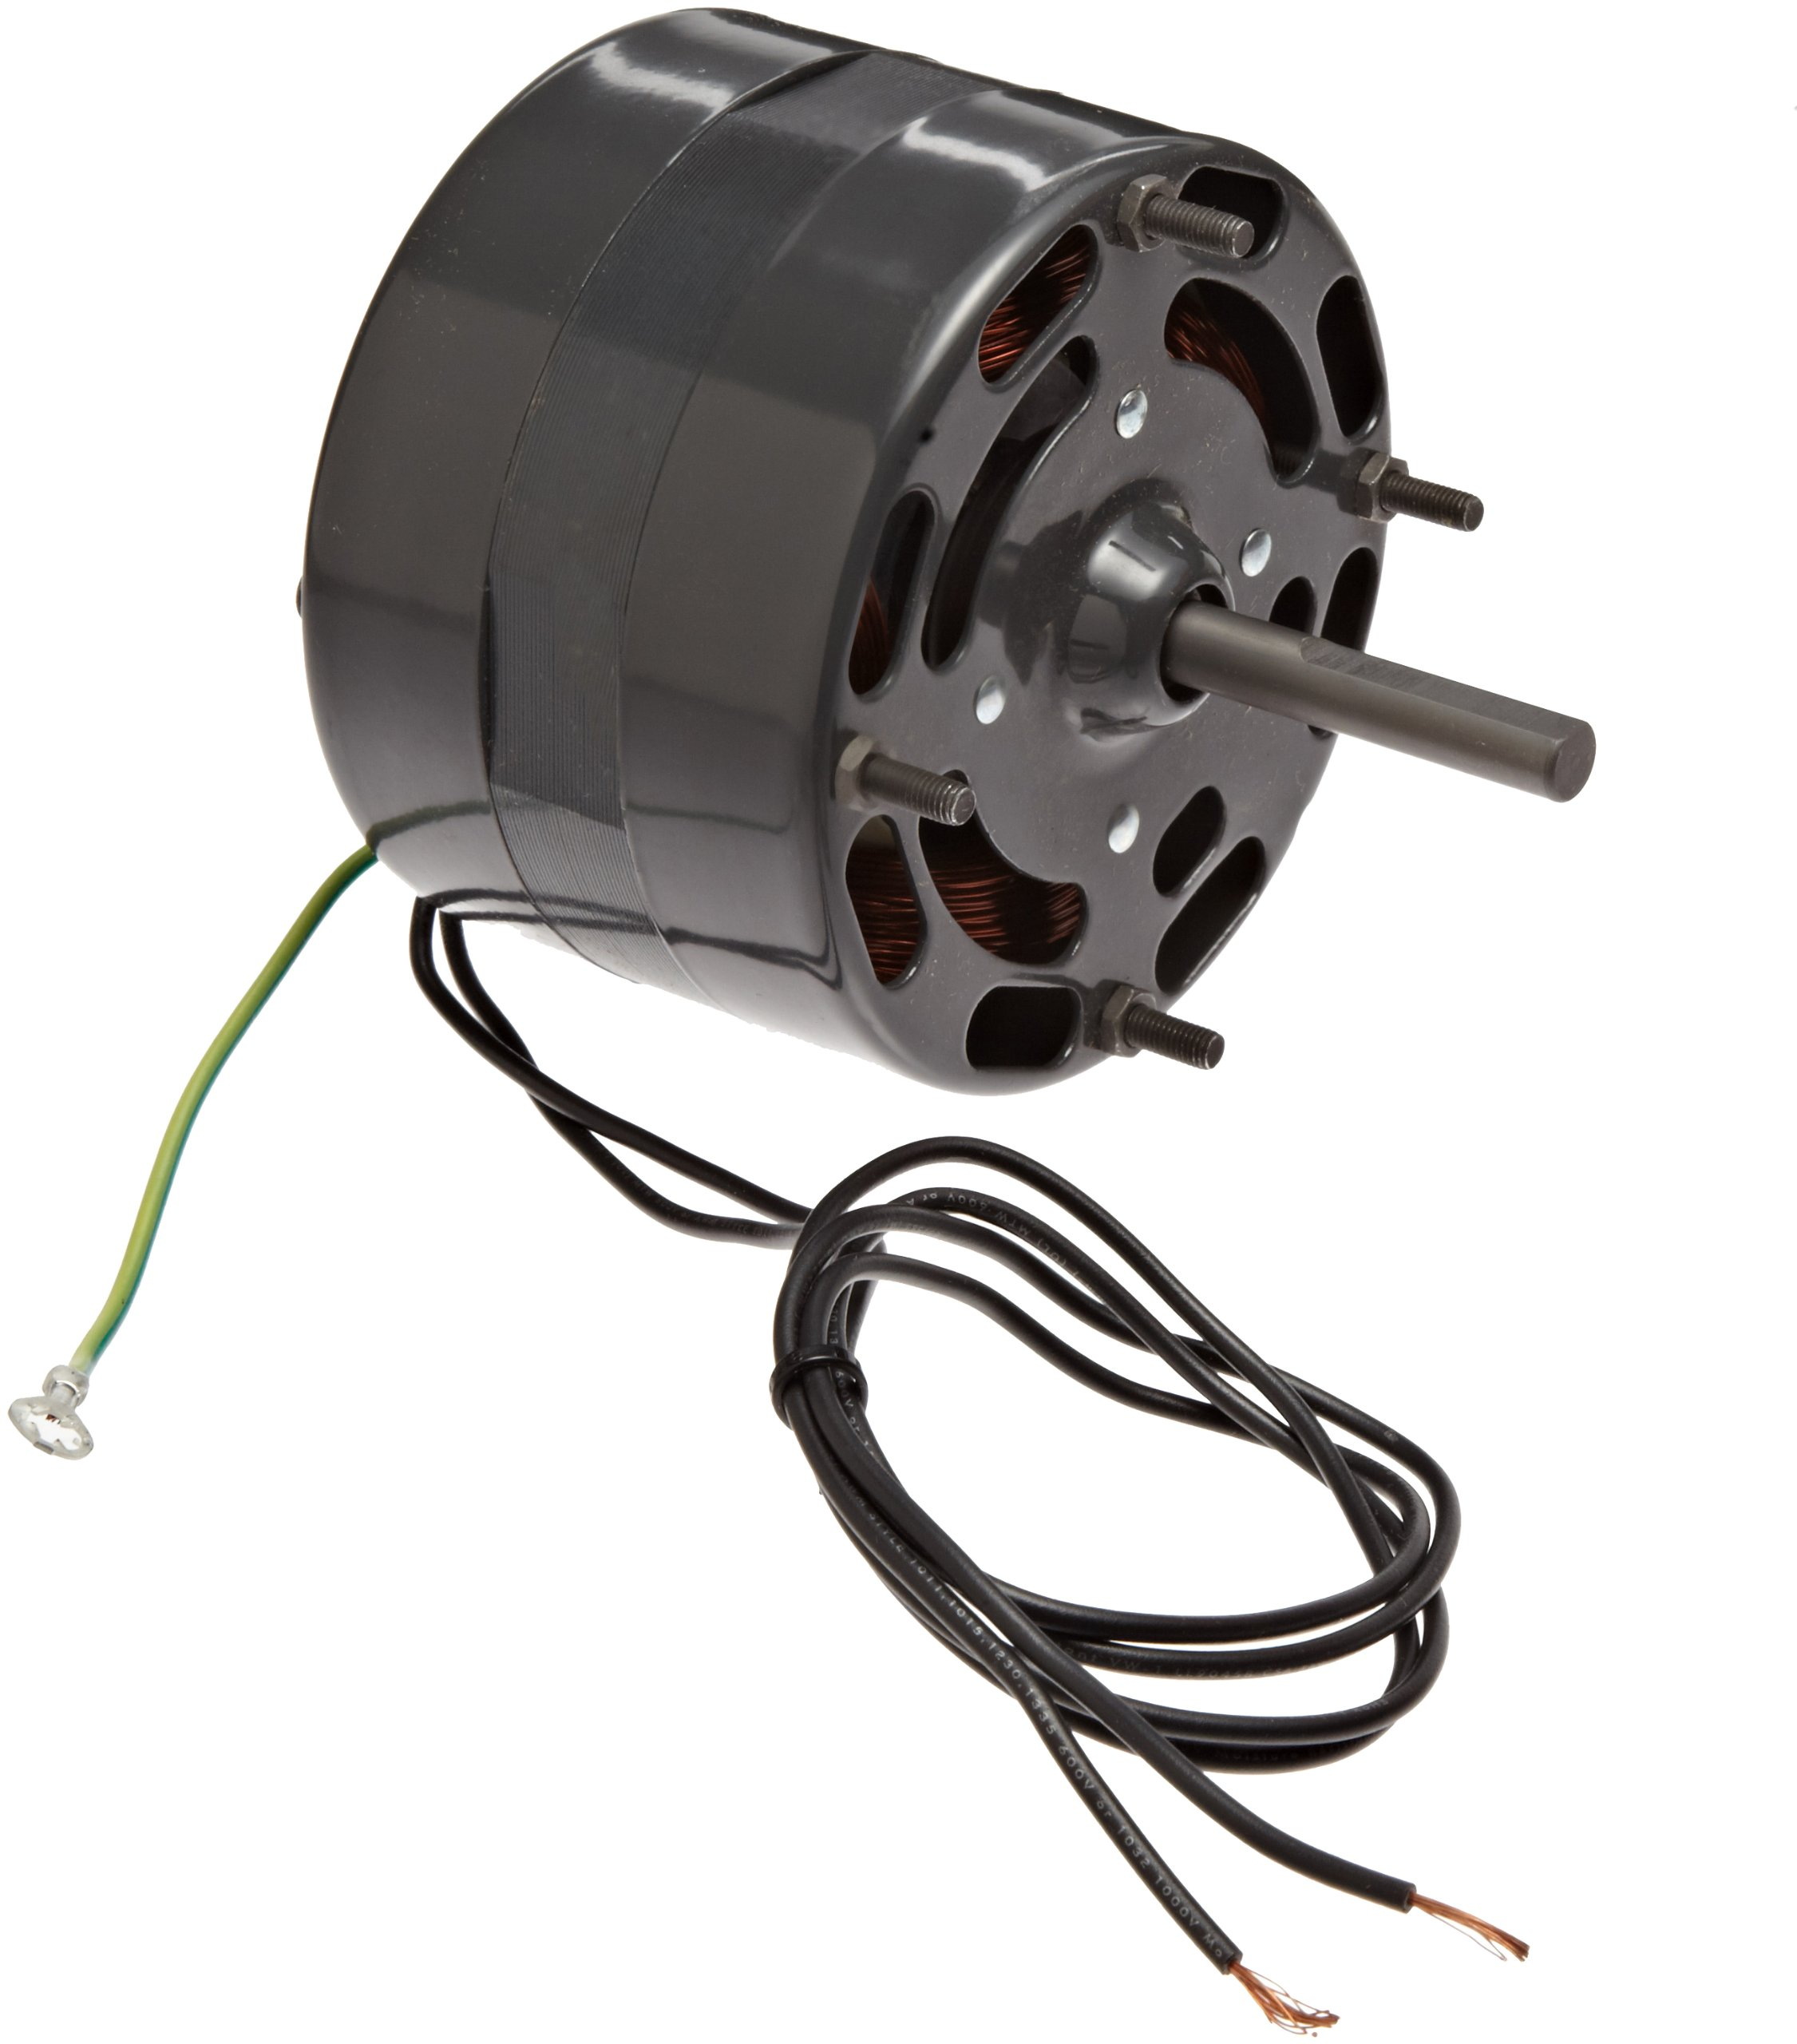 Fasco D116 4.4'' Frame Open Ventilated Shaded Pole General Purpose Motor with Sleeve Bearing, 1/15HP, 1500rpm, 115V, 60Hz, 2.4 amps